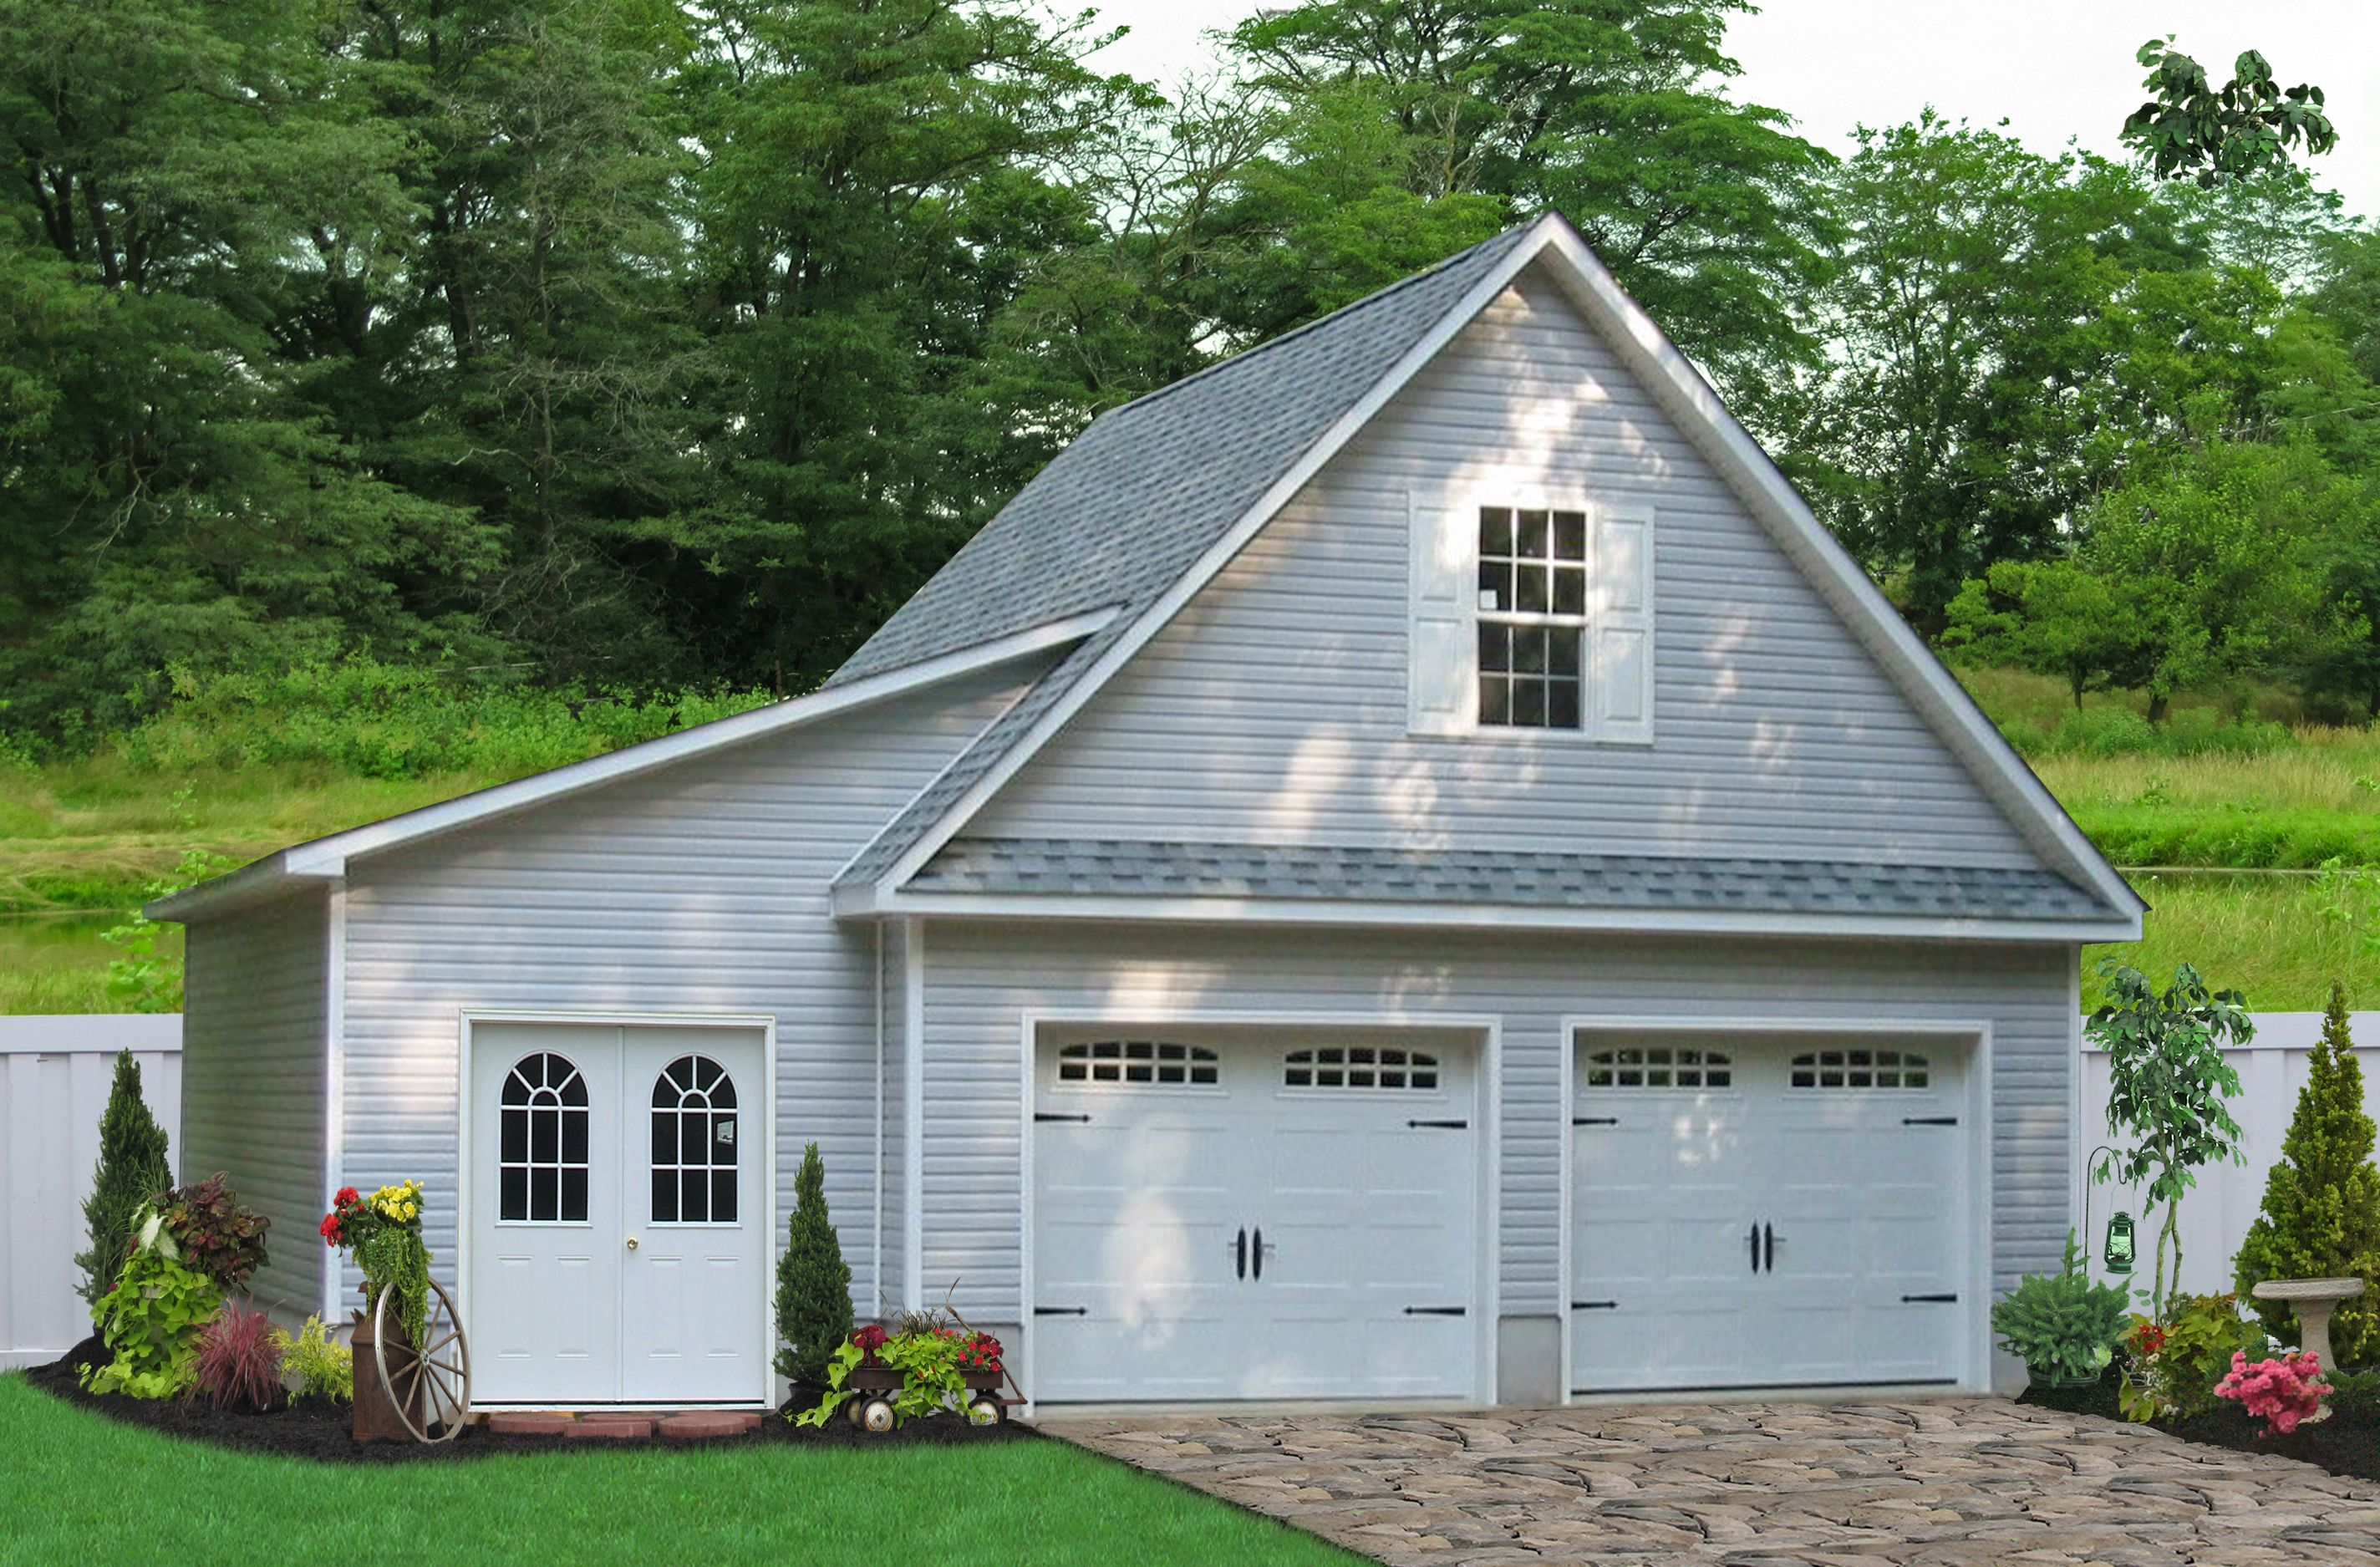 Buy A Sheds Unlimited 2 Car Garage With Attic And You Will Find